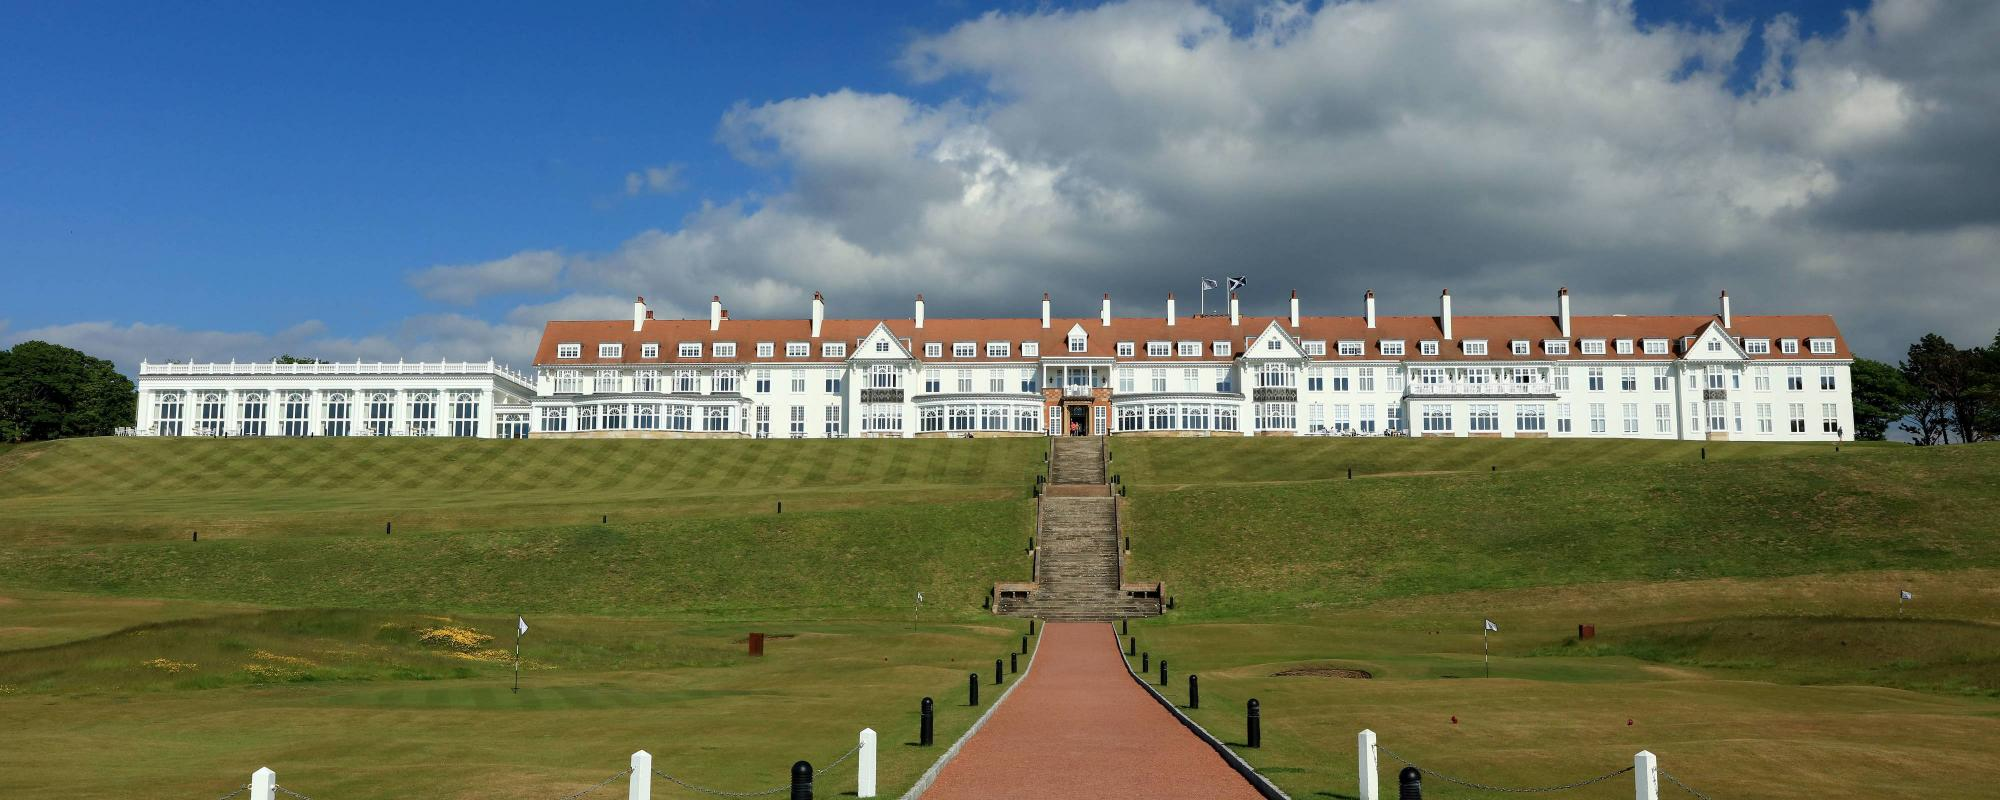 View Trump Turnberry's lovely hotel in marvelous Scotland.